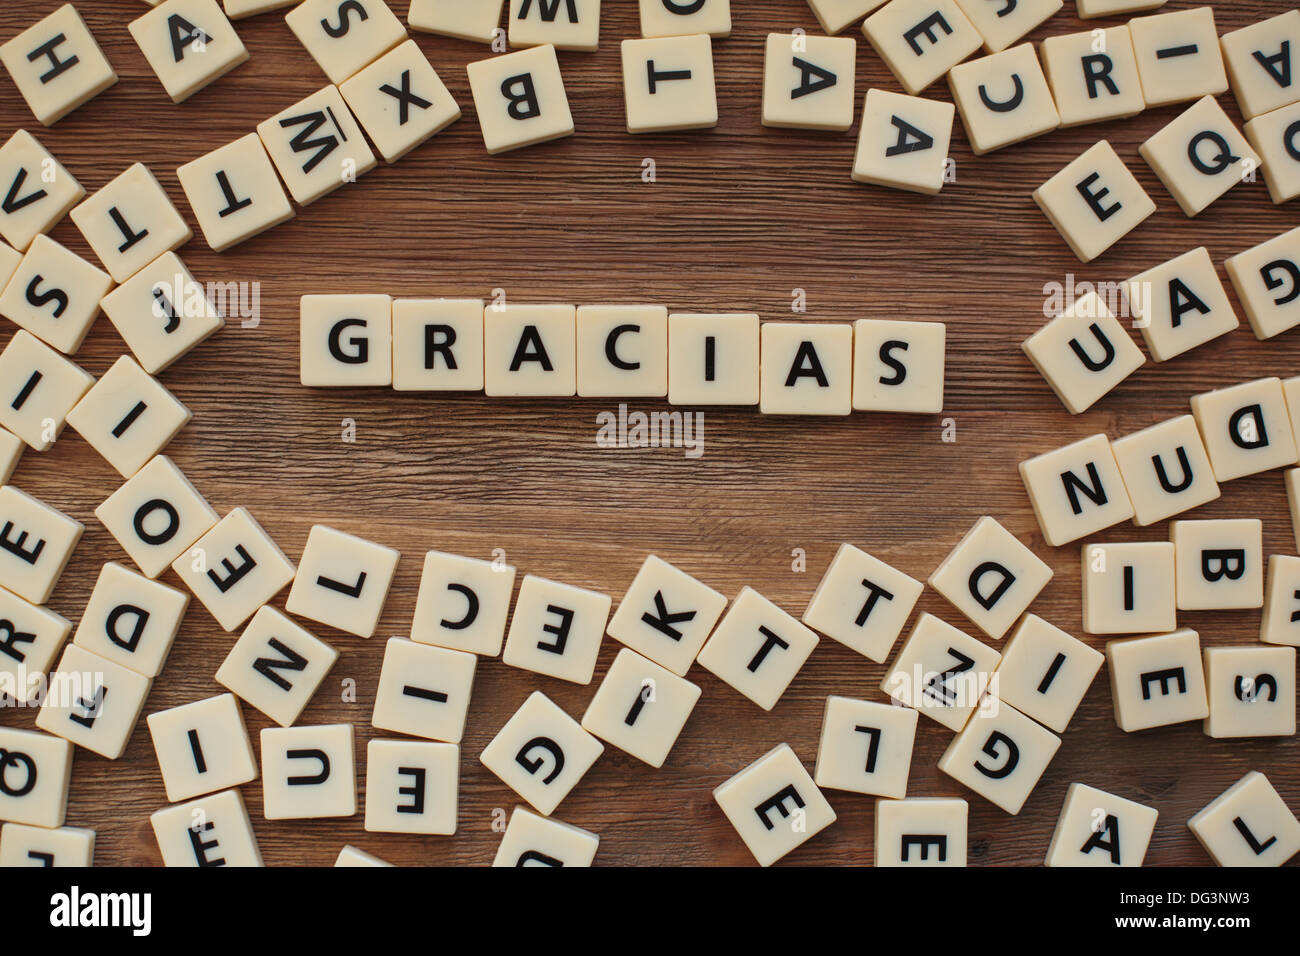 letters mexico stockfotos letters mexico bilder alamy. Black Bedroom Furniture Sets. Home Design Ideas